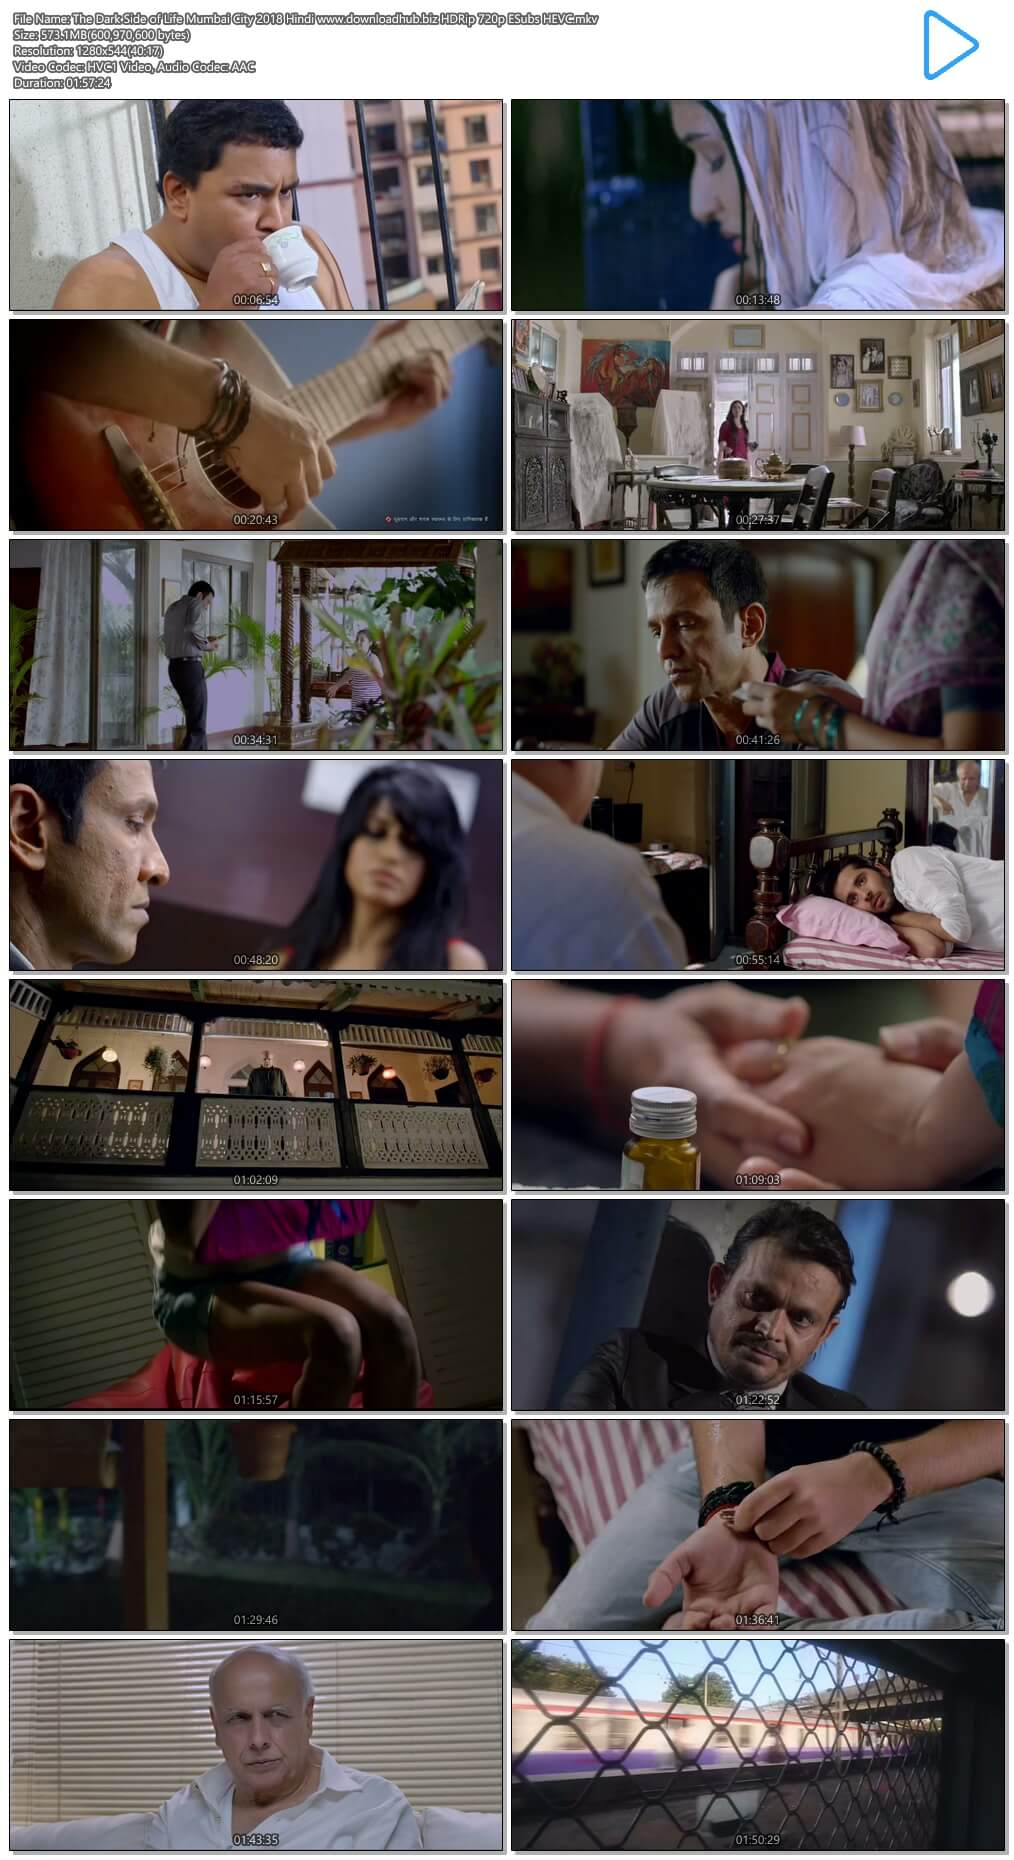 The Dark Side of Life Mumbai City 2018 Hindi 550MB HDRip 720p ESubs HEVC